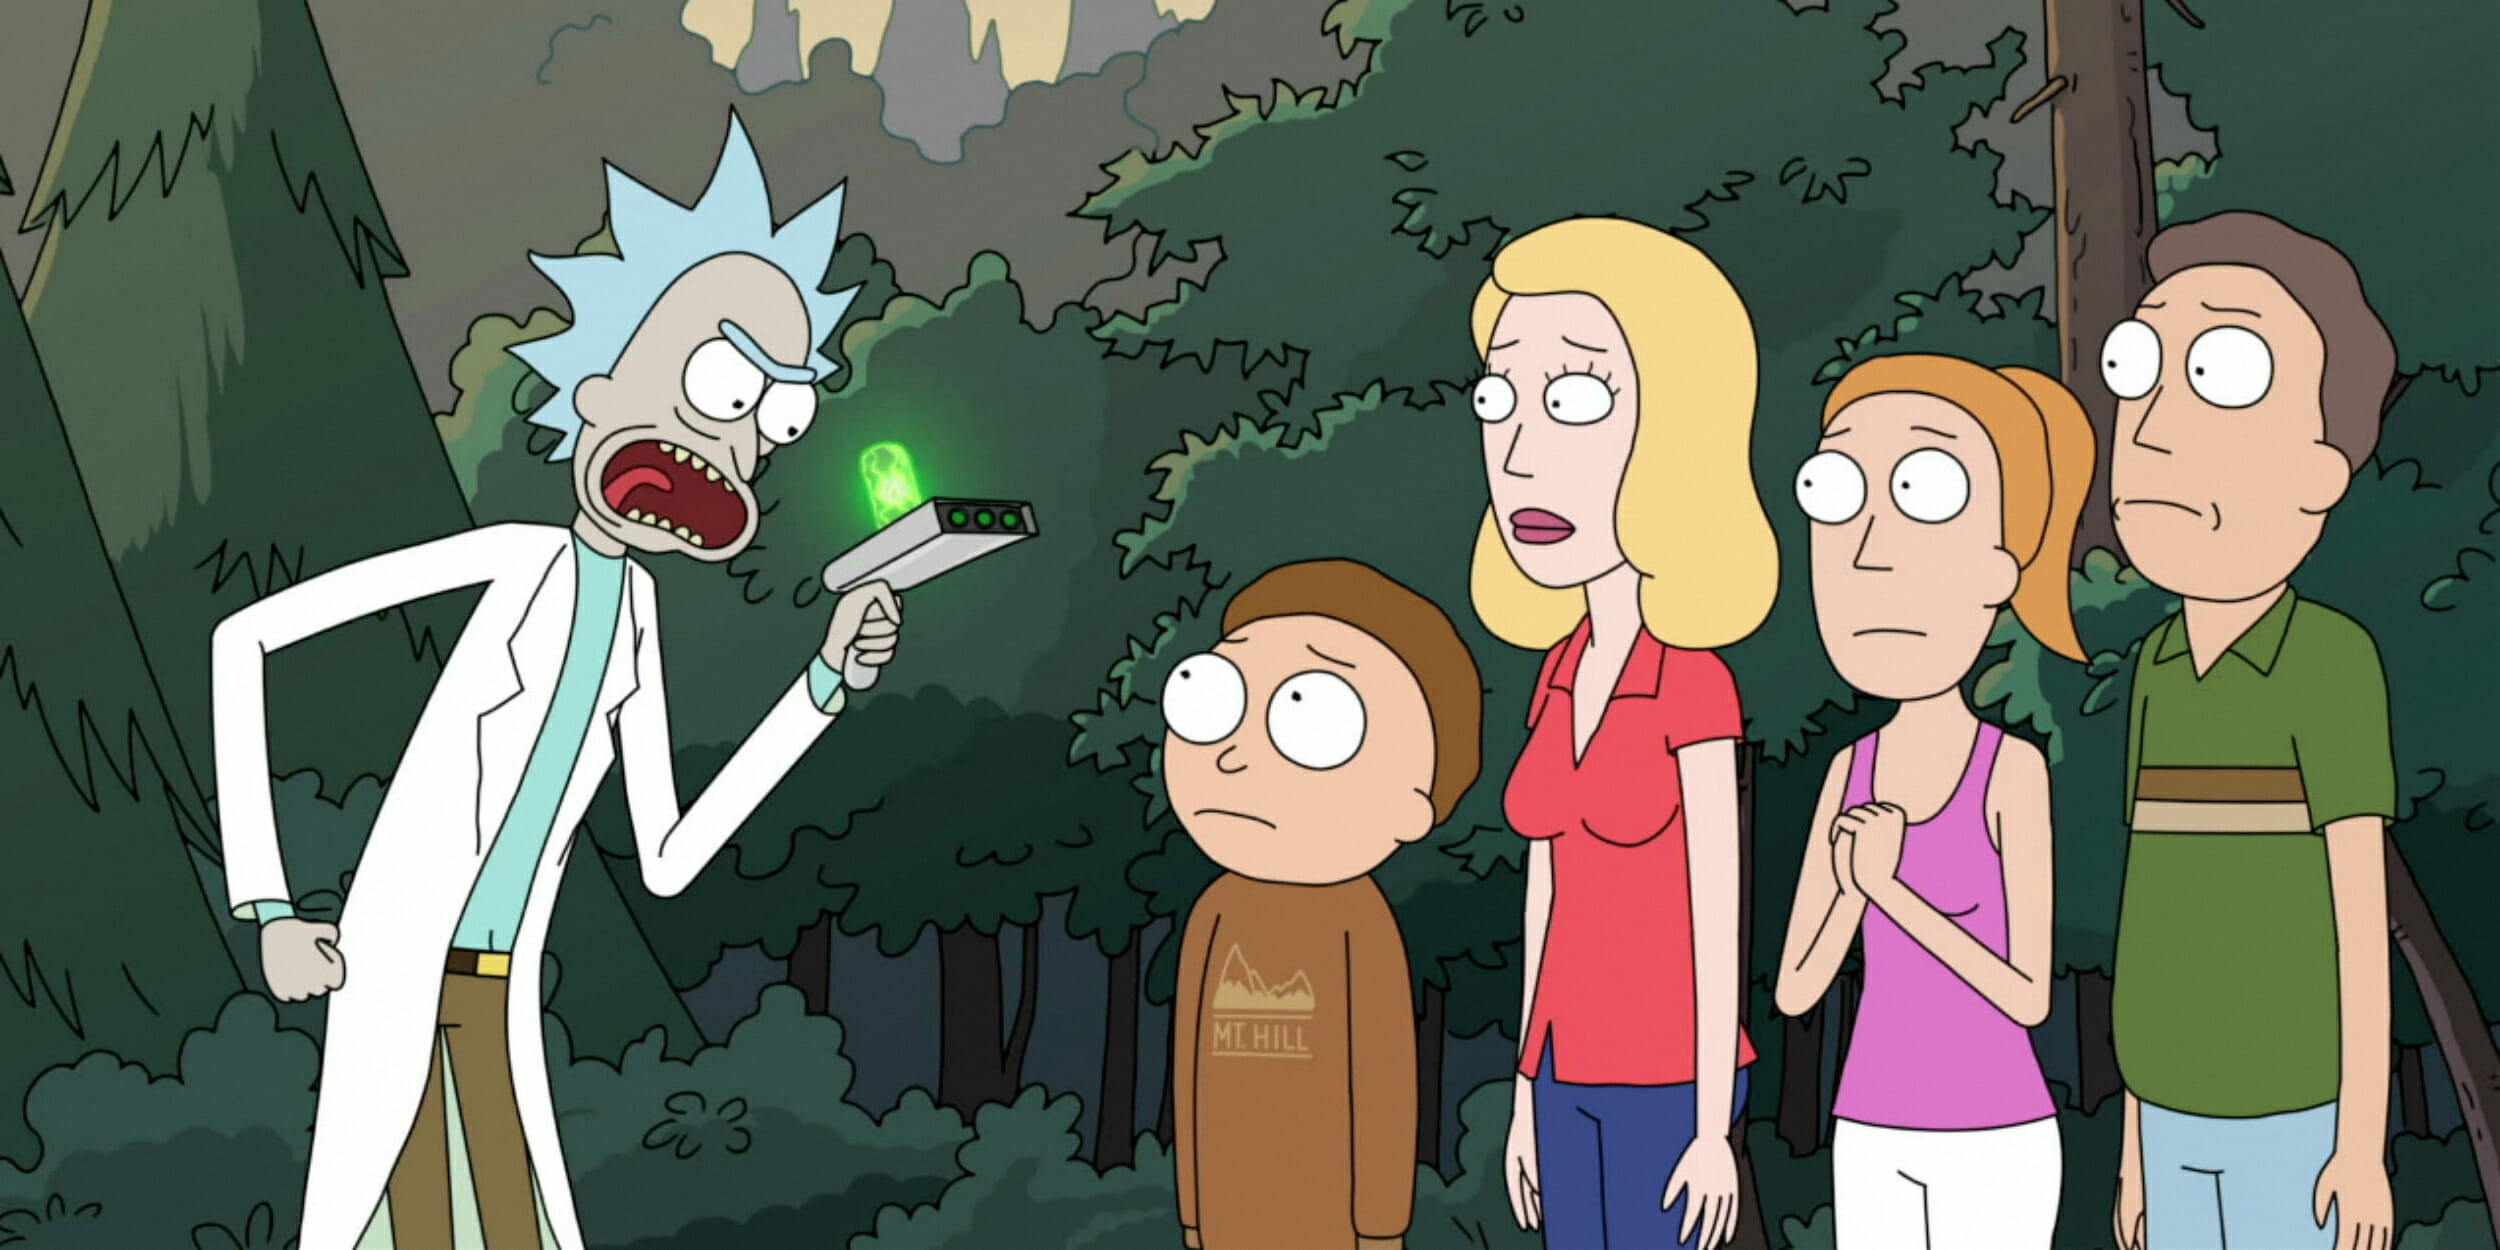 Rick and Morty Season 4: Release Date, Trailer, Episodes